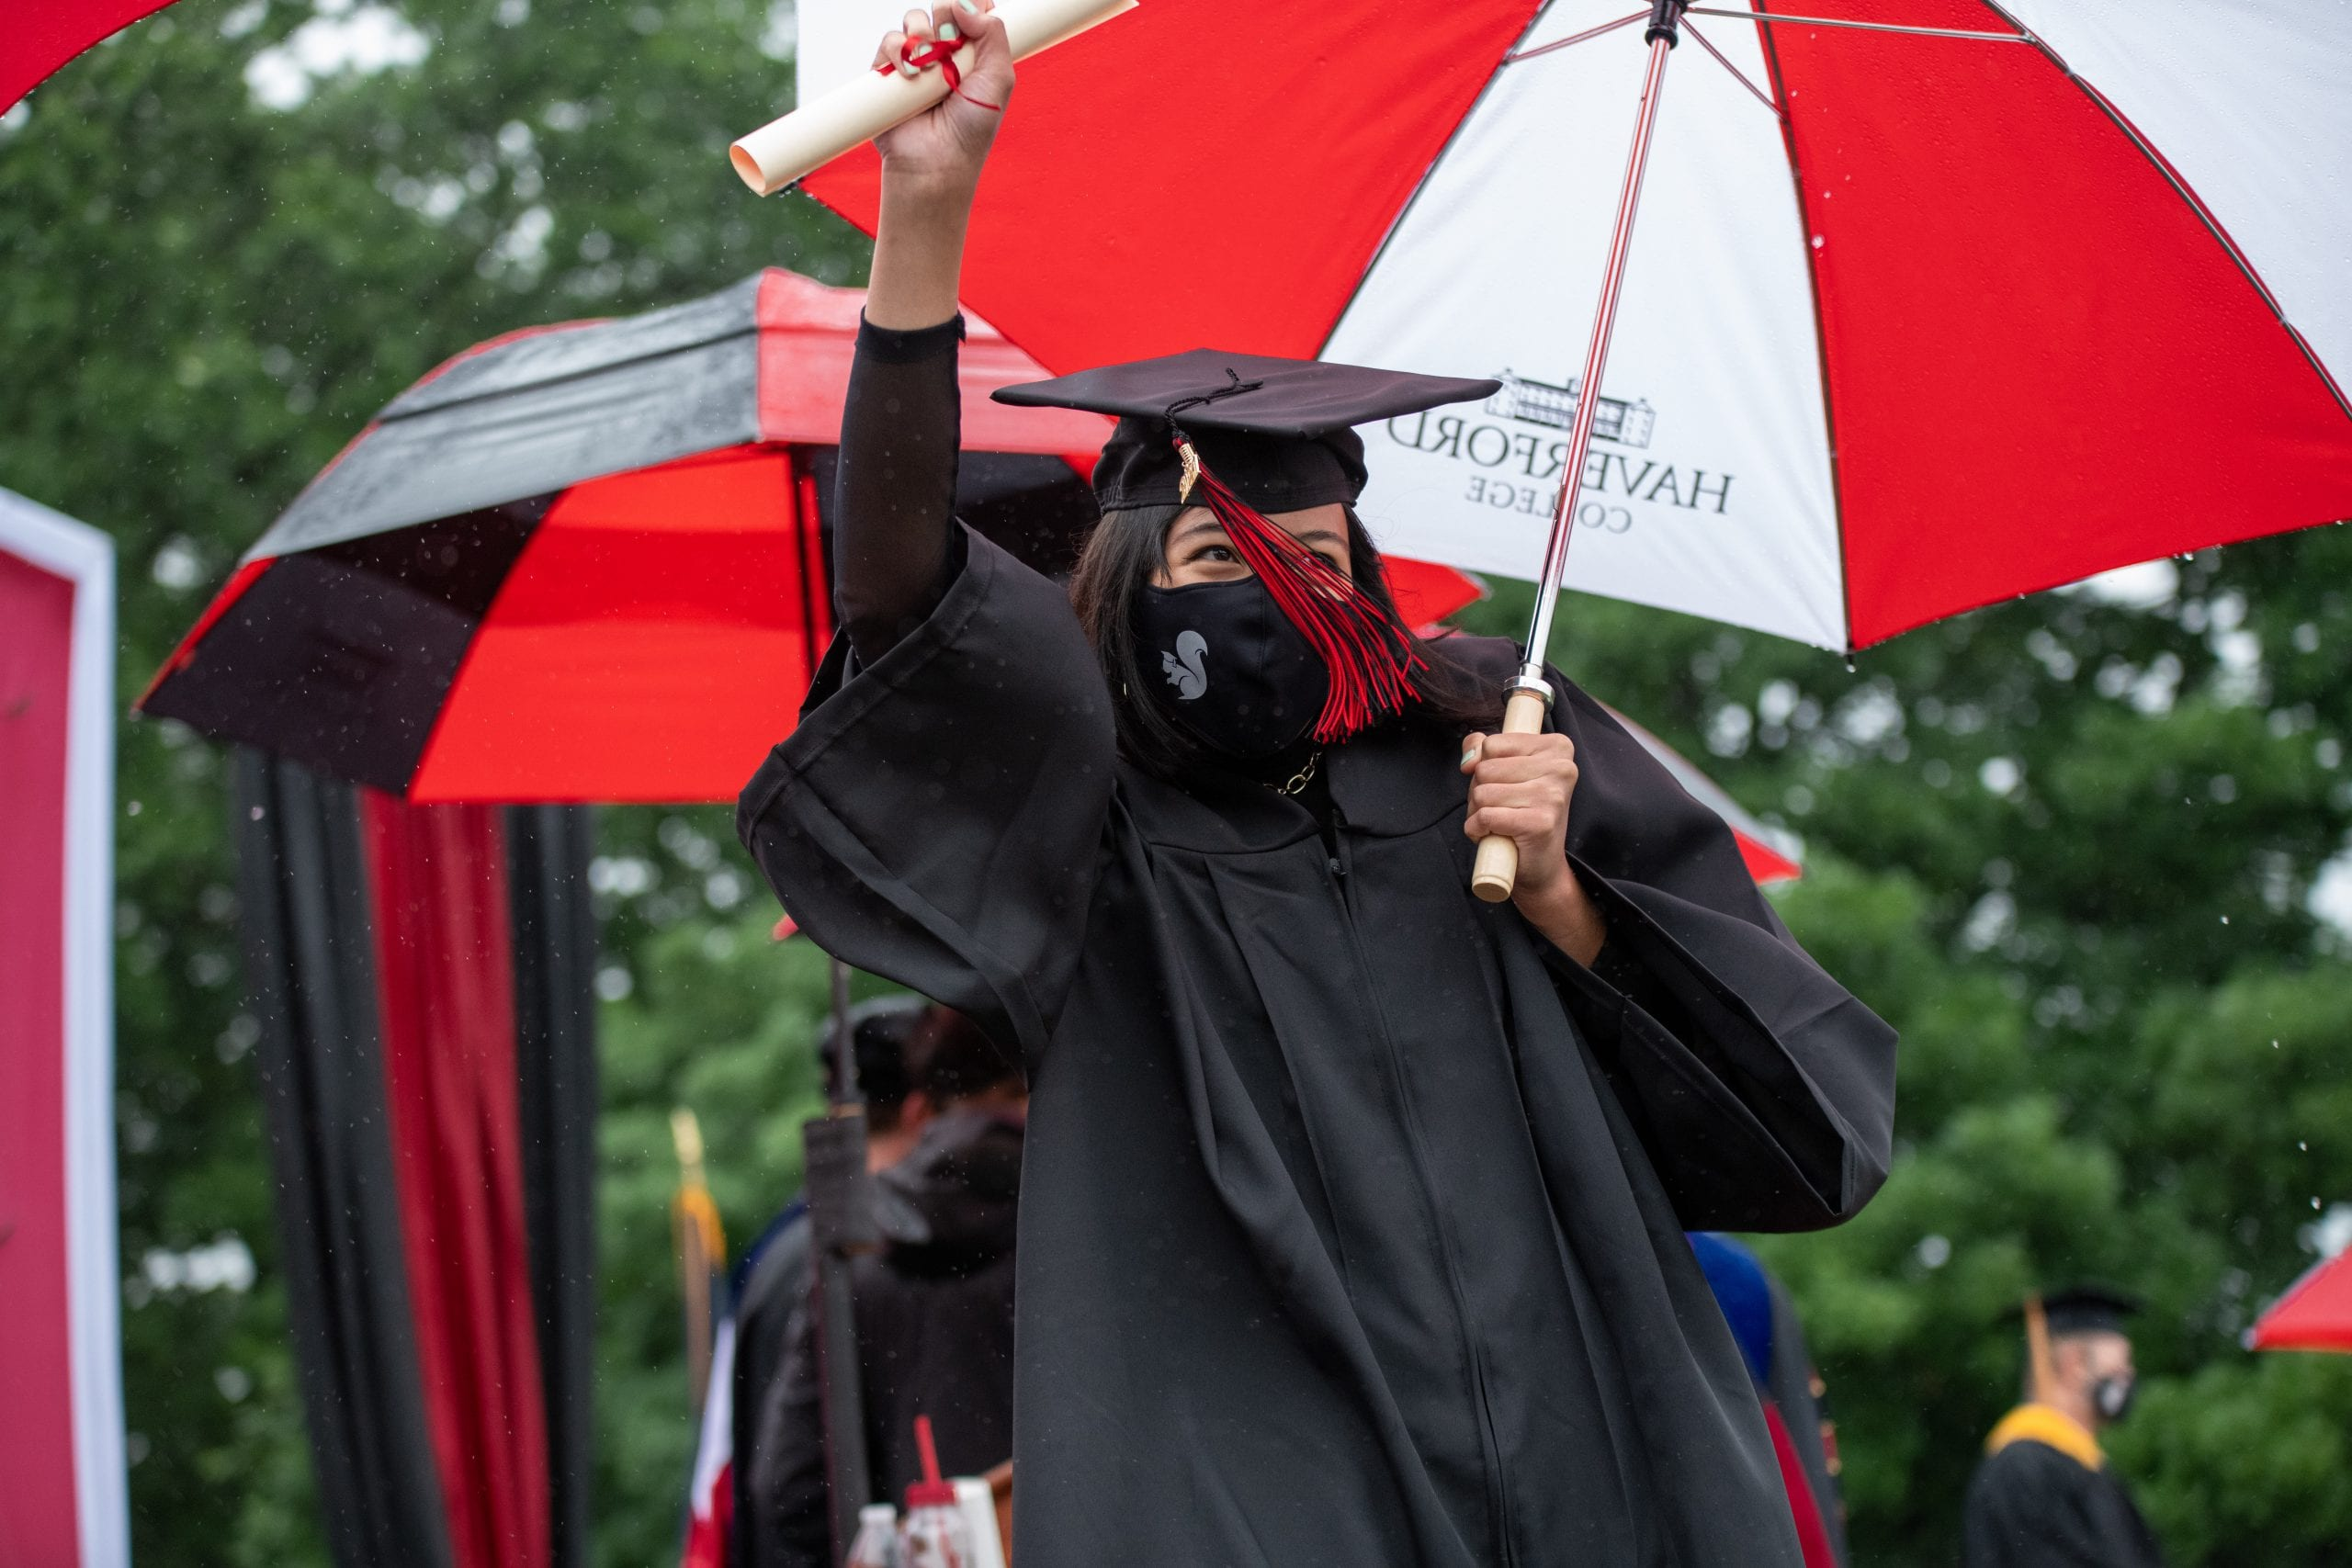 A graudate in a squirrel mask and black cap and gown holds a Haverford umbrella in one hand and her diploma in the other.